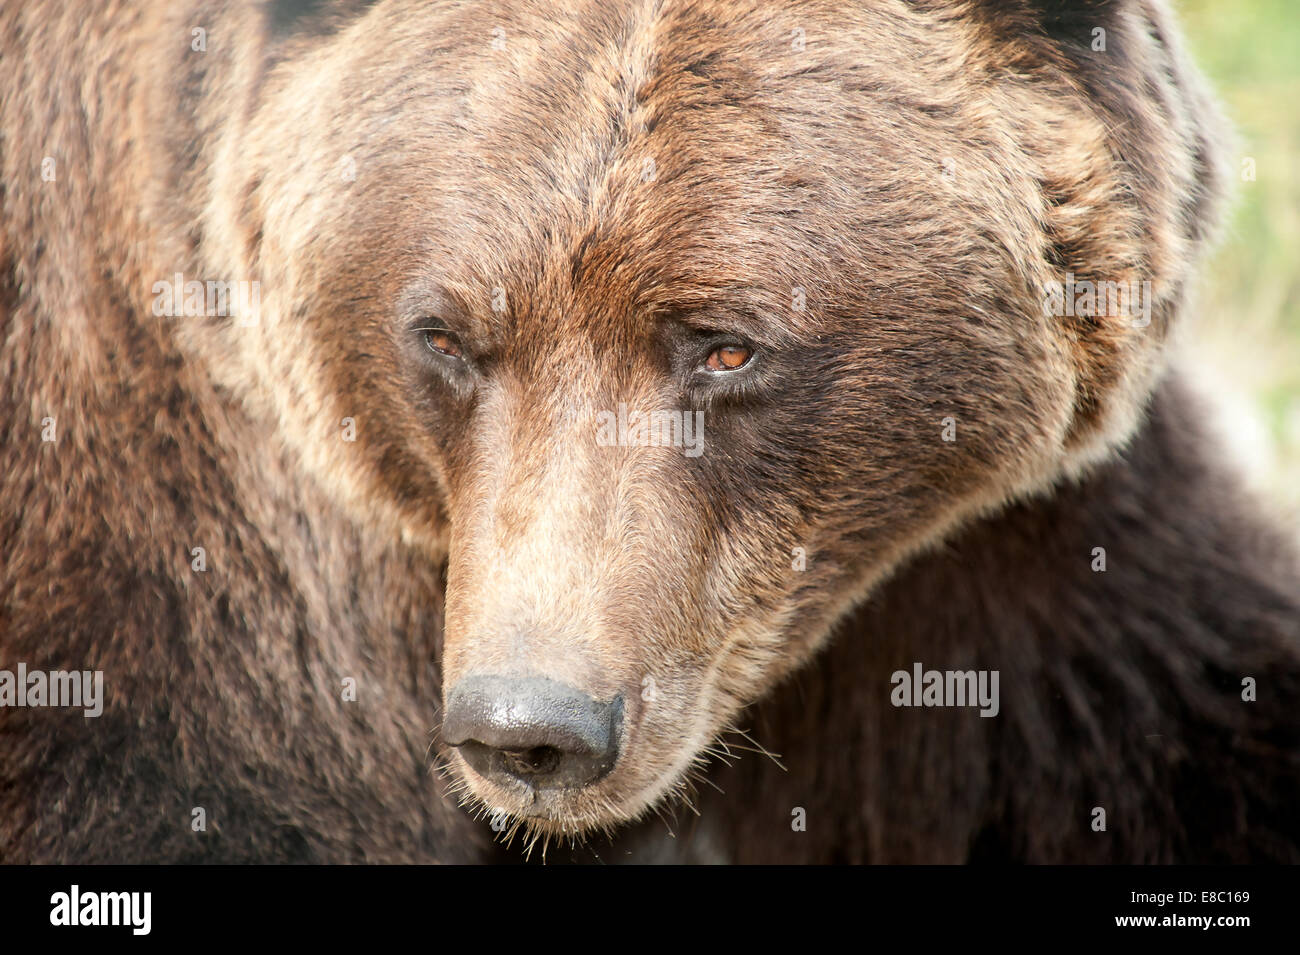 Close up of a large dangerous grizzly / Brown bear with red / orange eyes in Alaska | nose | head | snout | fur - Stock Image